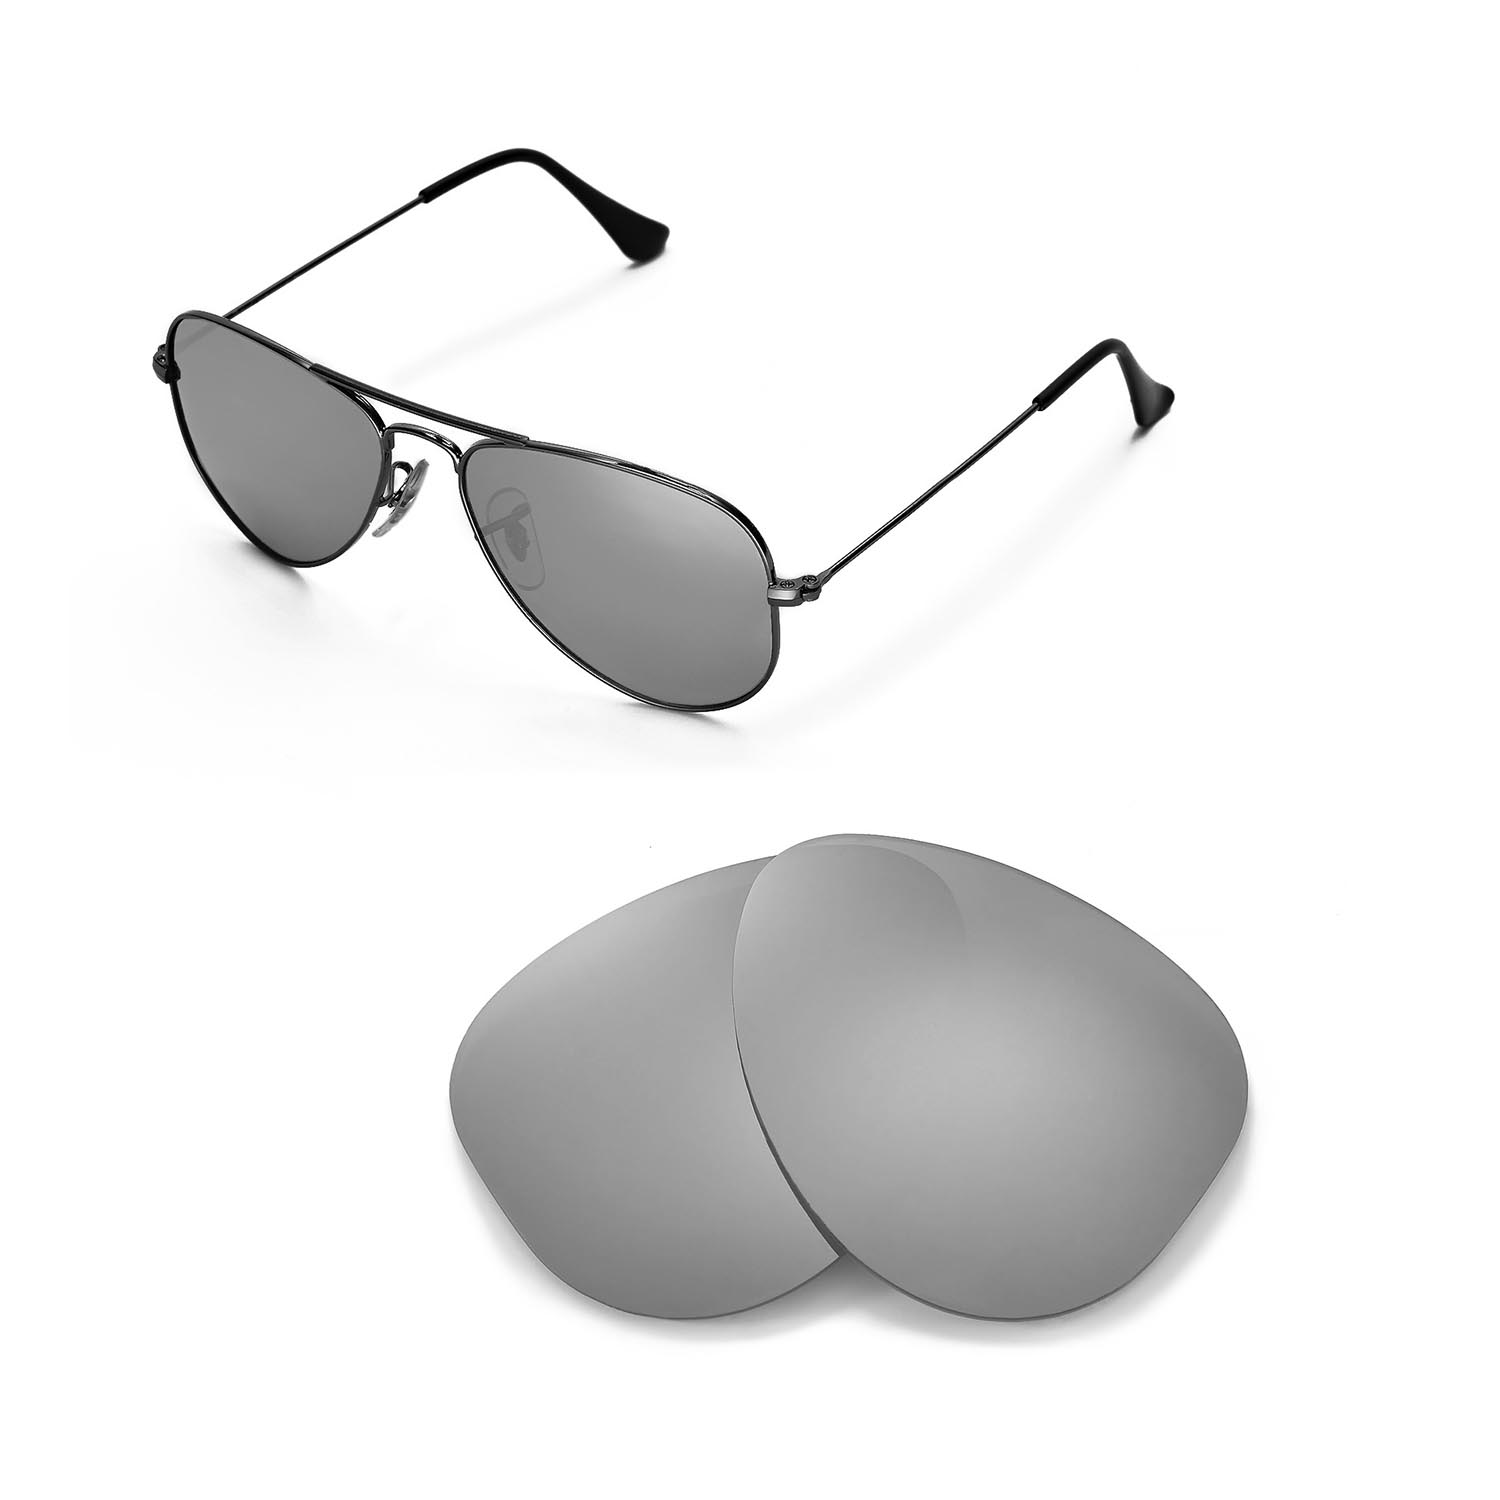 f7109ba1c2 Details about New WL Polarized Titanium Lenses For Ray-Ban Aviator RB3044  Small Metal 52mm